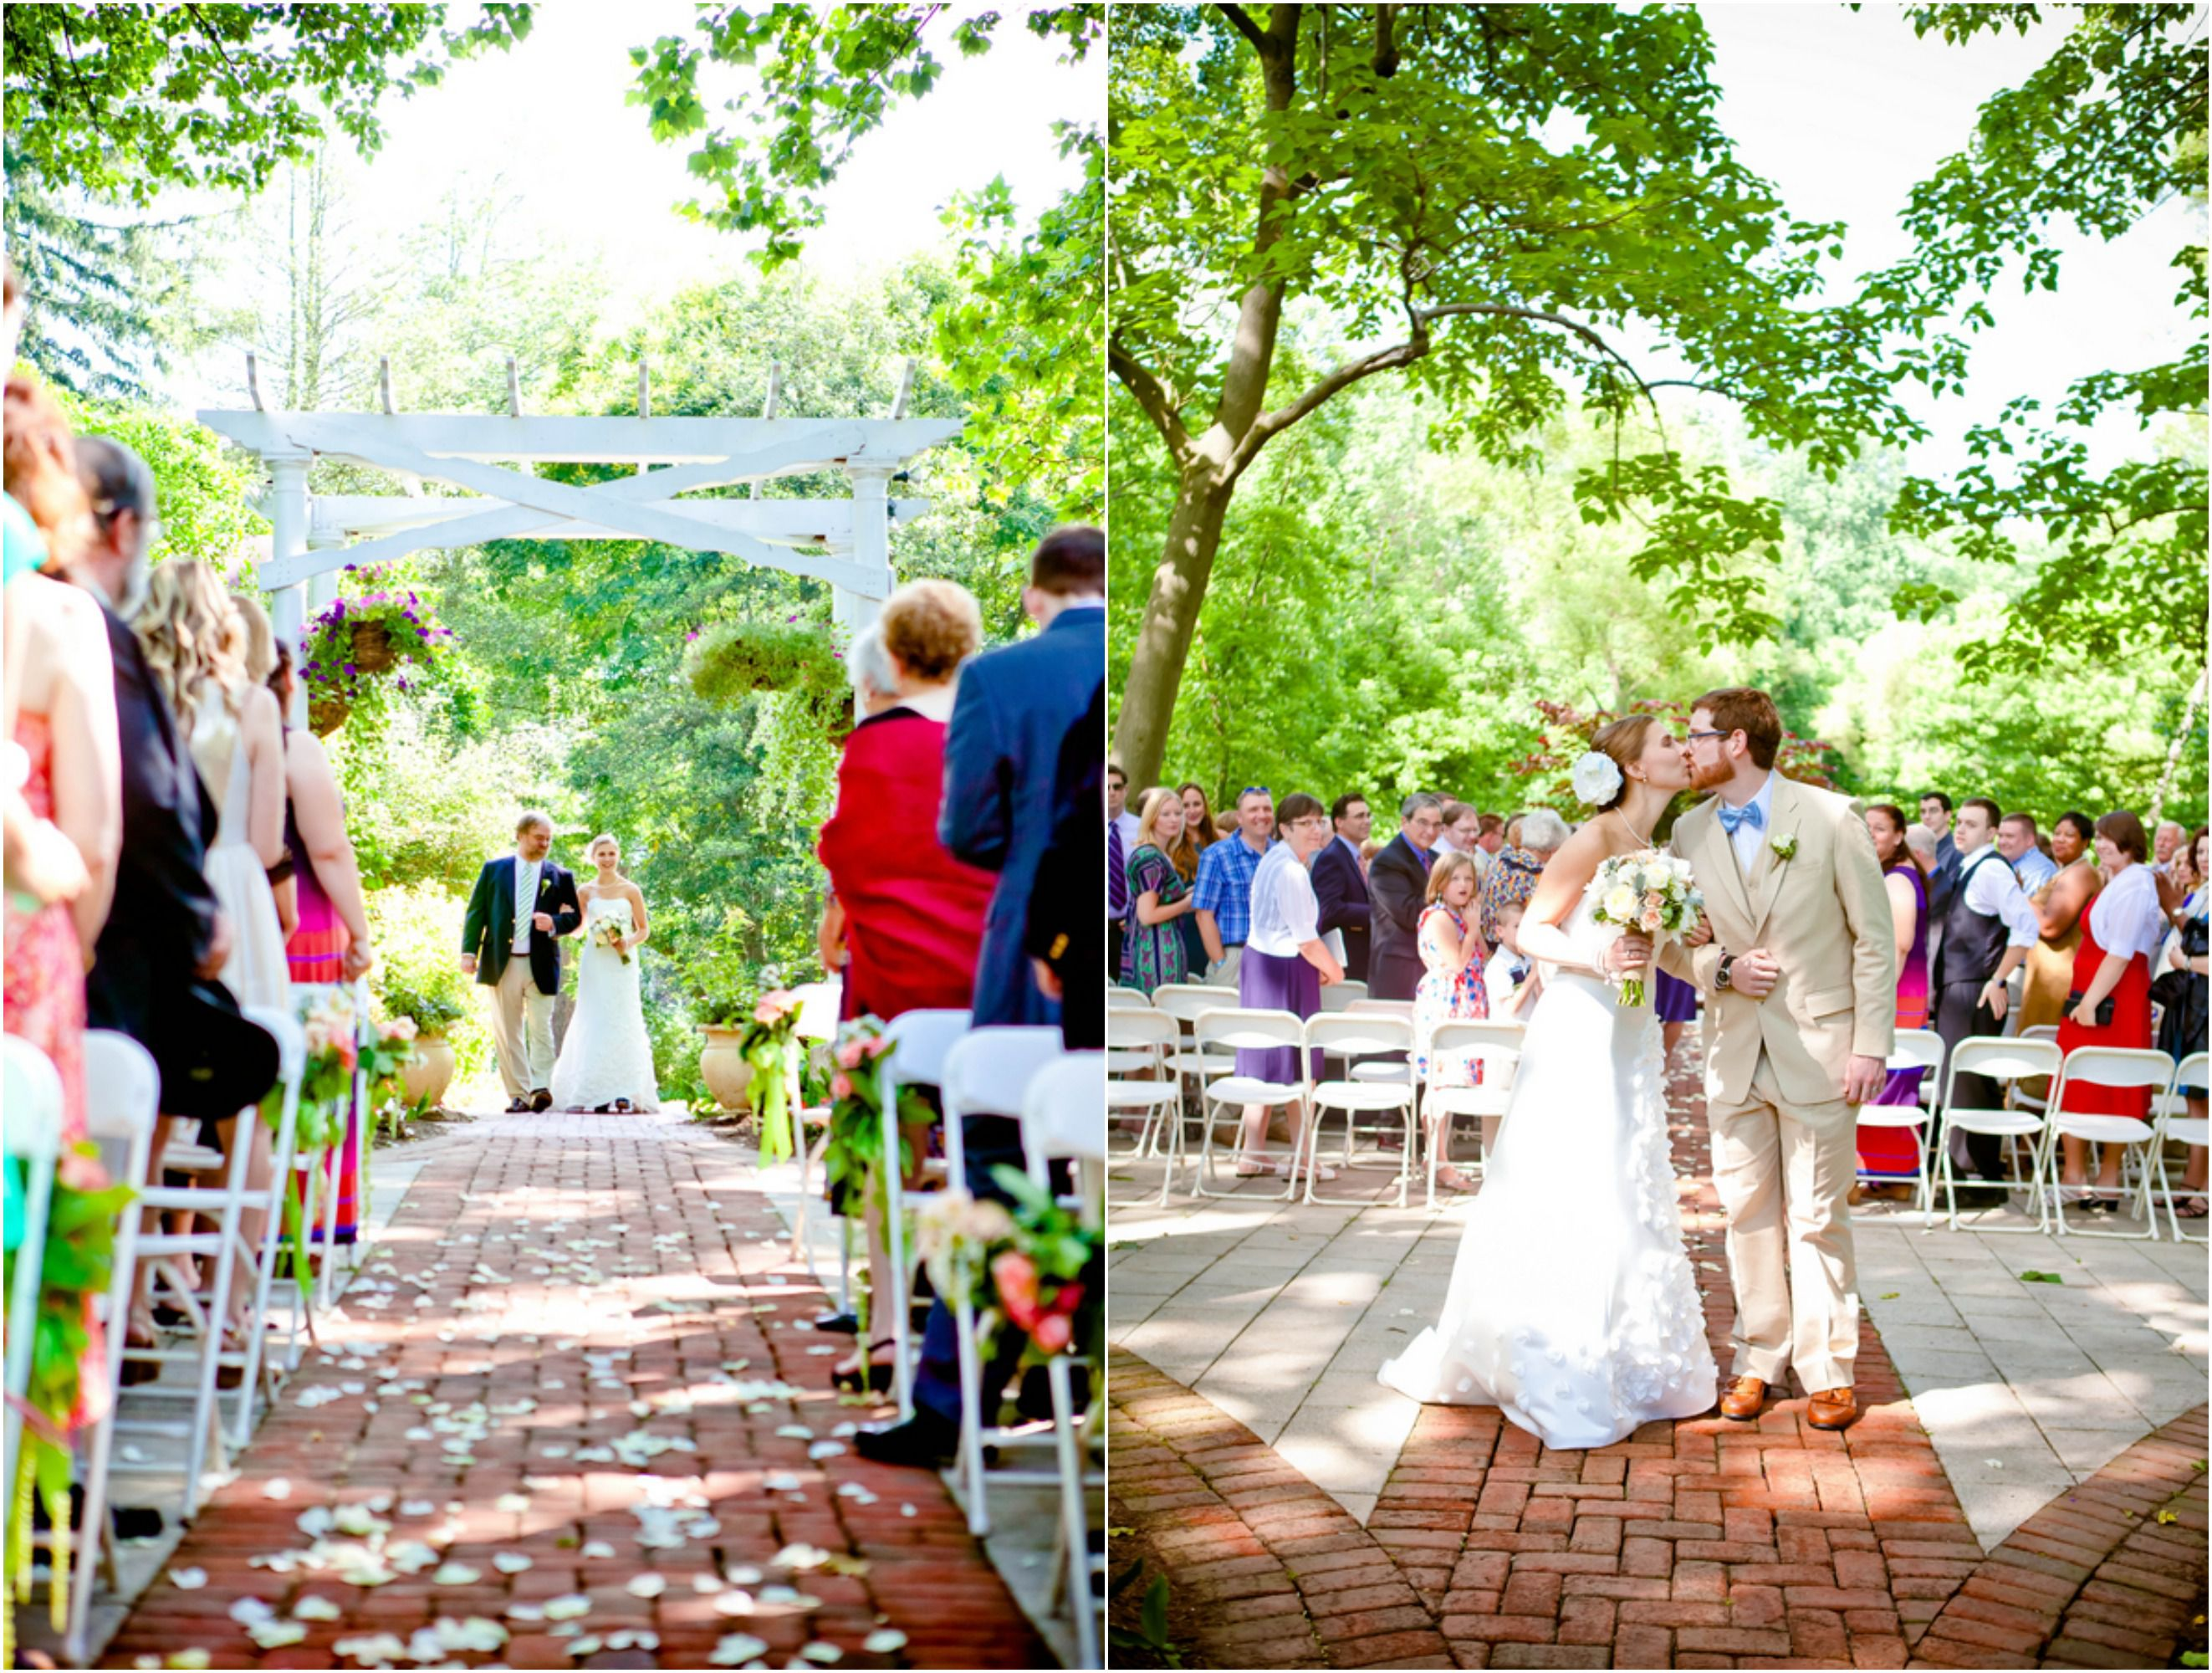 Outdoor Maryland Wedding At Elkridge Furnace Inn  Rustic. Wedding Decorating Services. Fall Wedding Gray Suit. Wedding Tips On The Day. Wedding Jewelry To Make. Wedding Bride And Groom Dance. Wedding Site In Delhi. Wedding Songs List Uk. Wedding March Notes For Trumpet